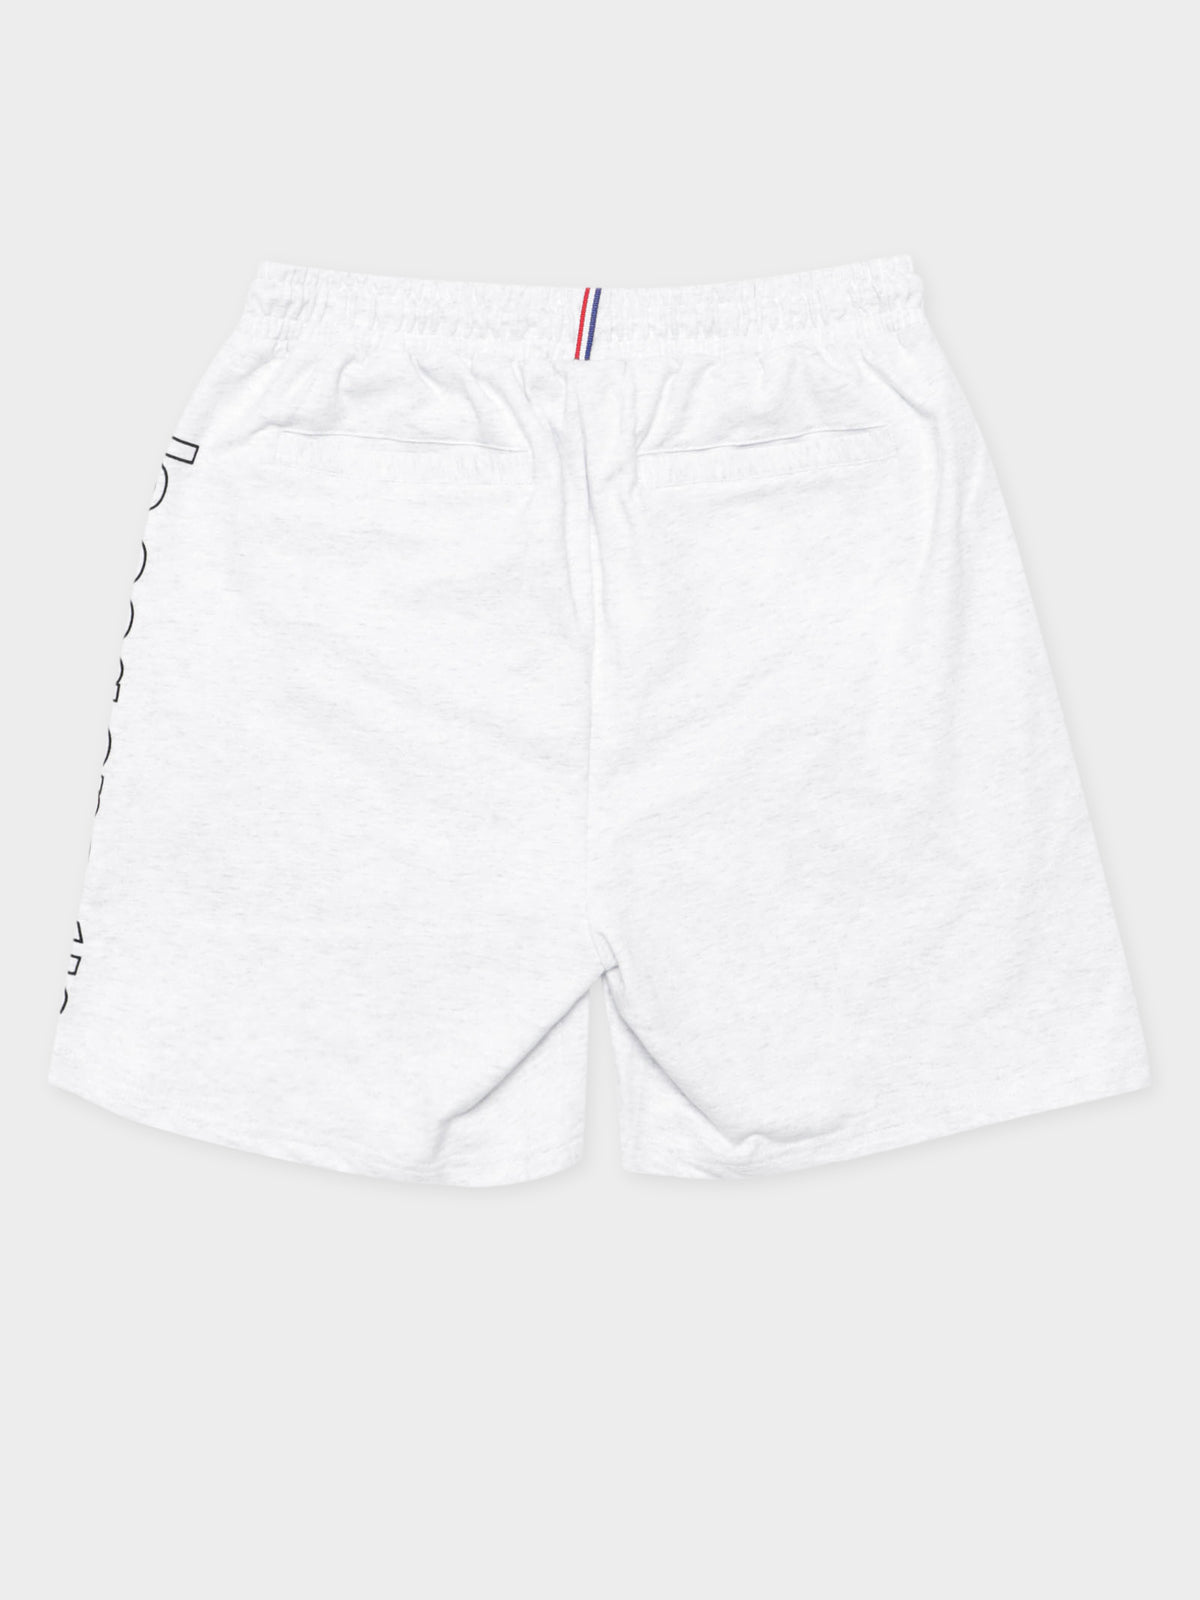 Monaco Fleece Shorts in Snow Marle